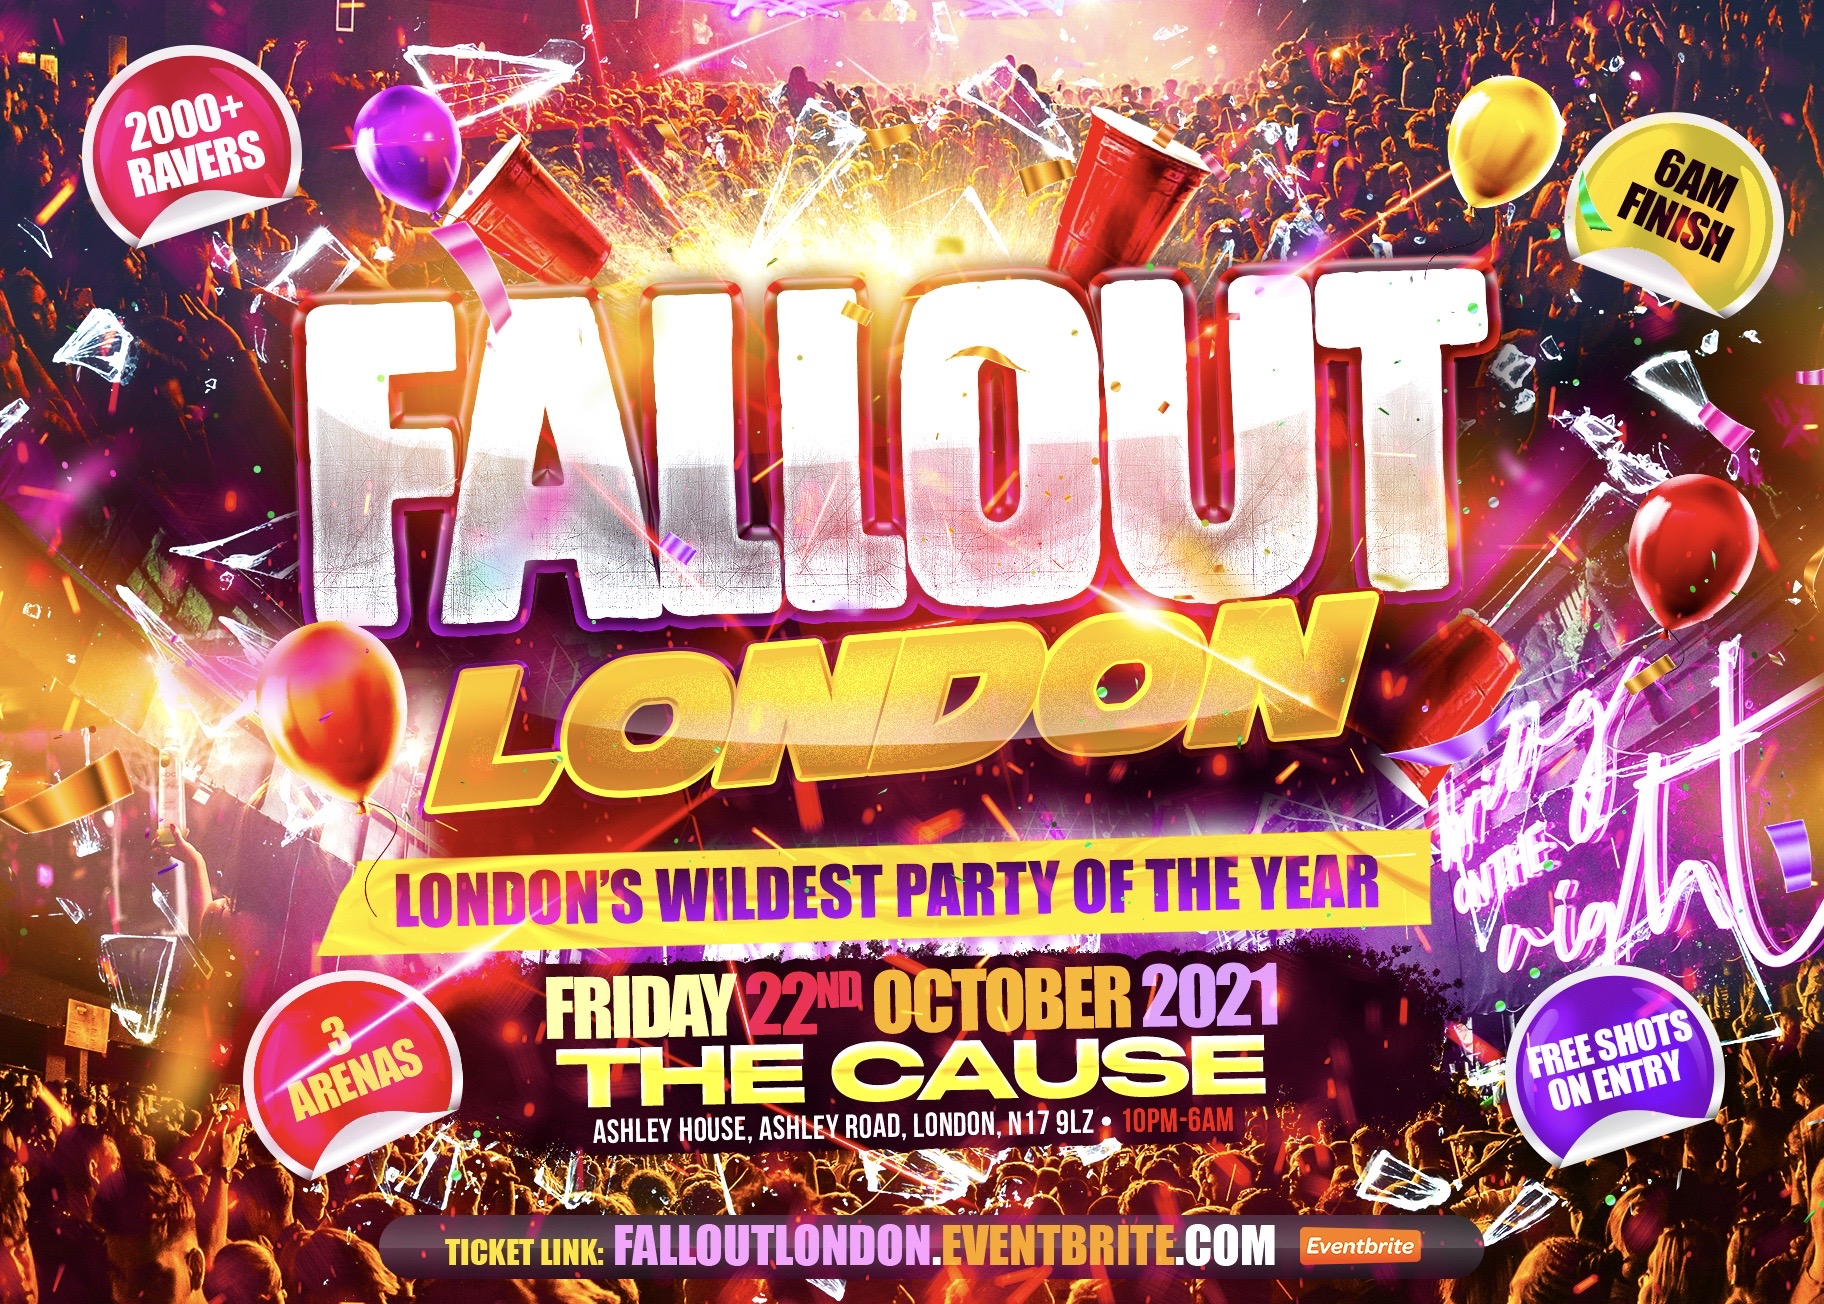 Fallout LDN - London's Wildest Party Of The Year 6AM FINISH